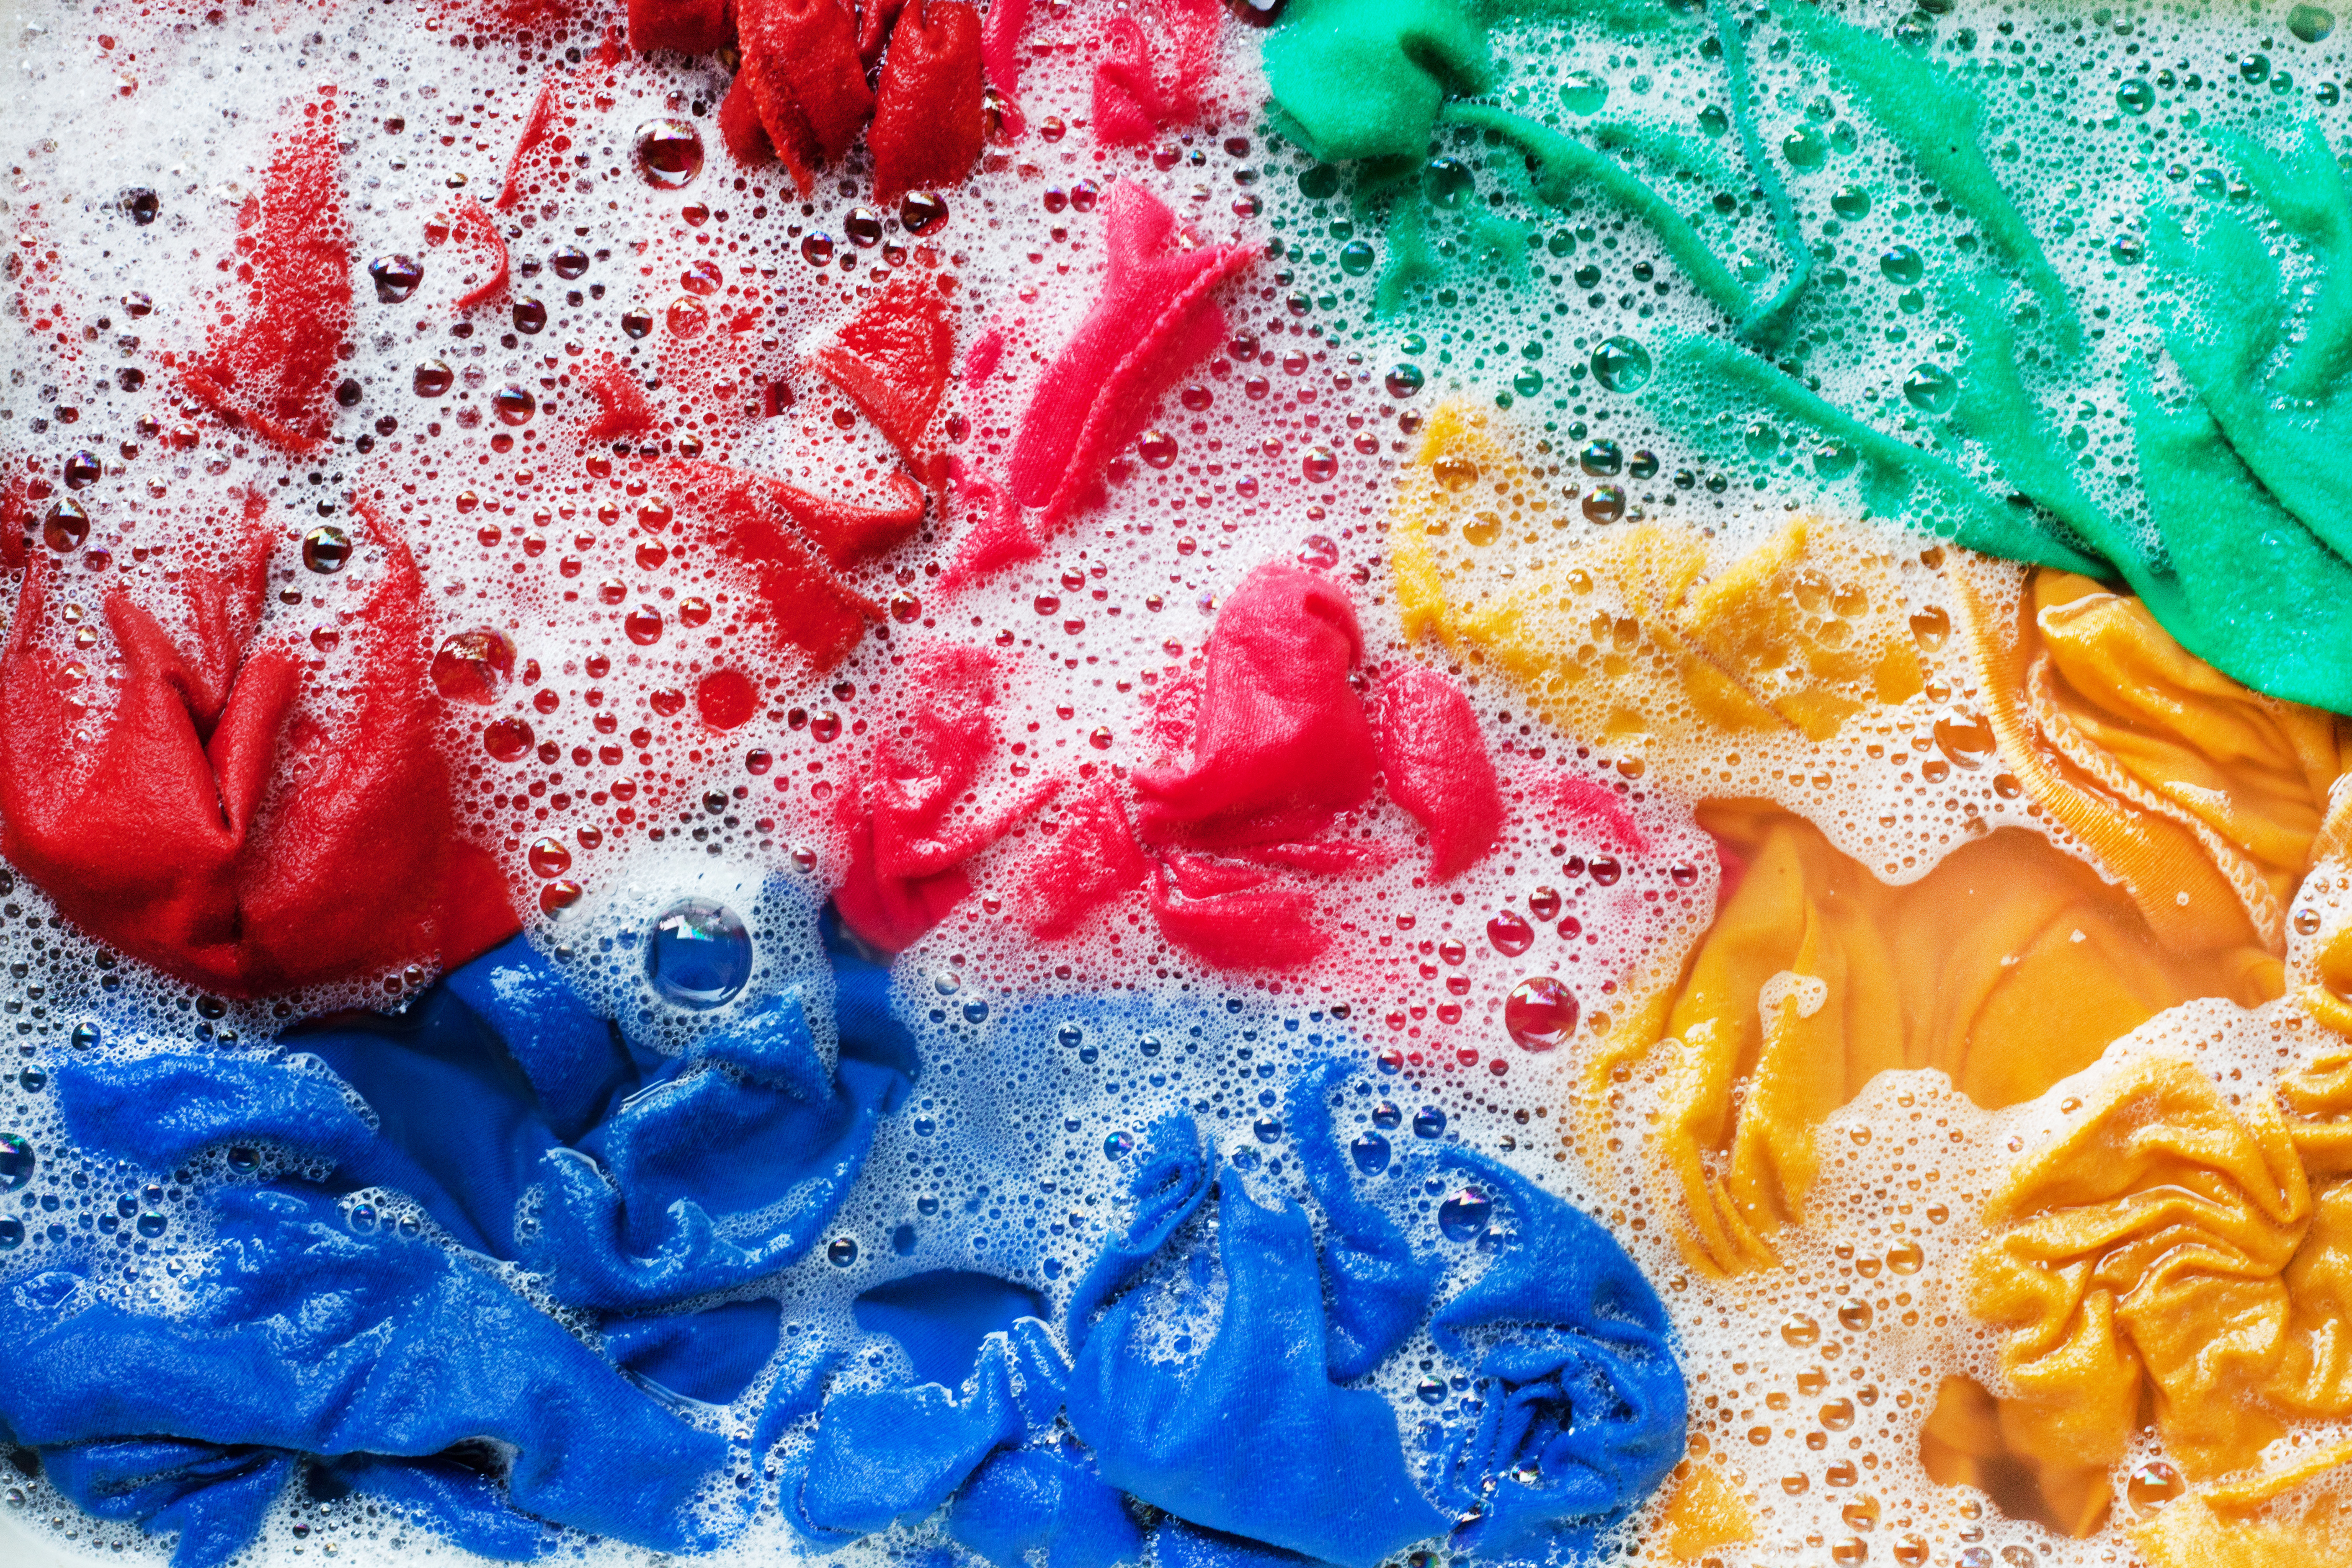 red, blue, yellow, and green items of clothing submerged in water and suds